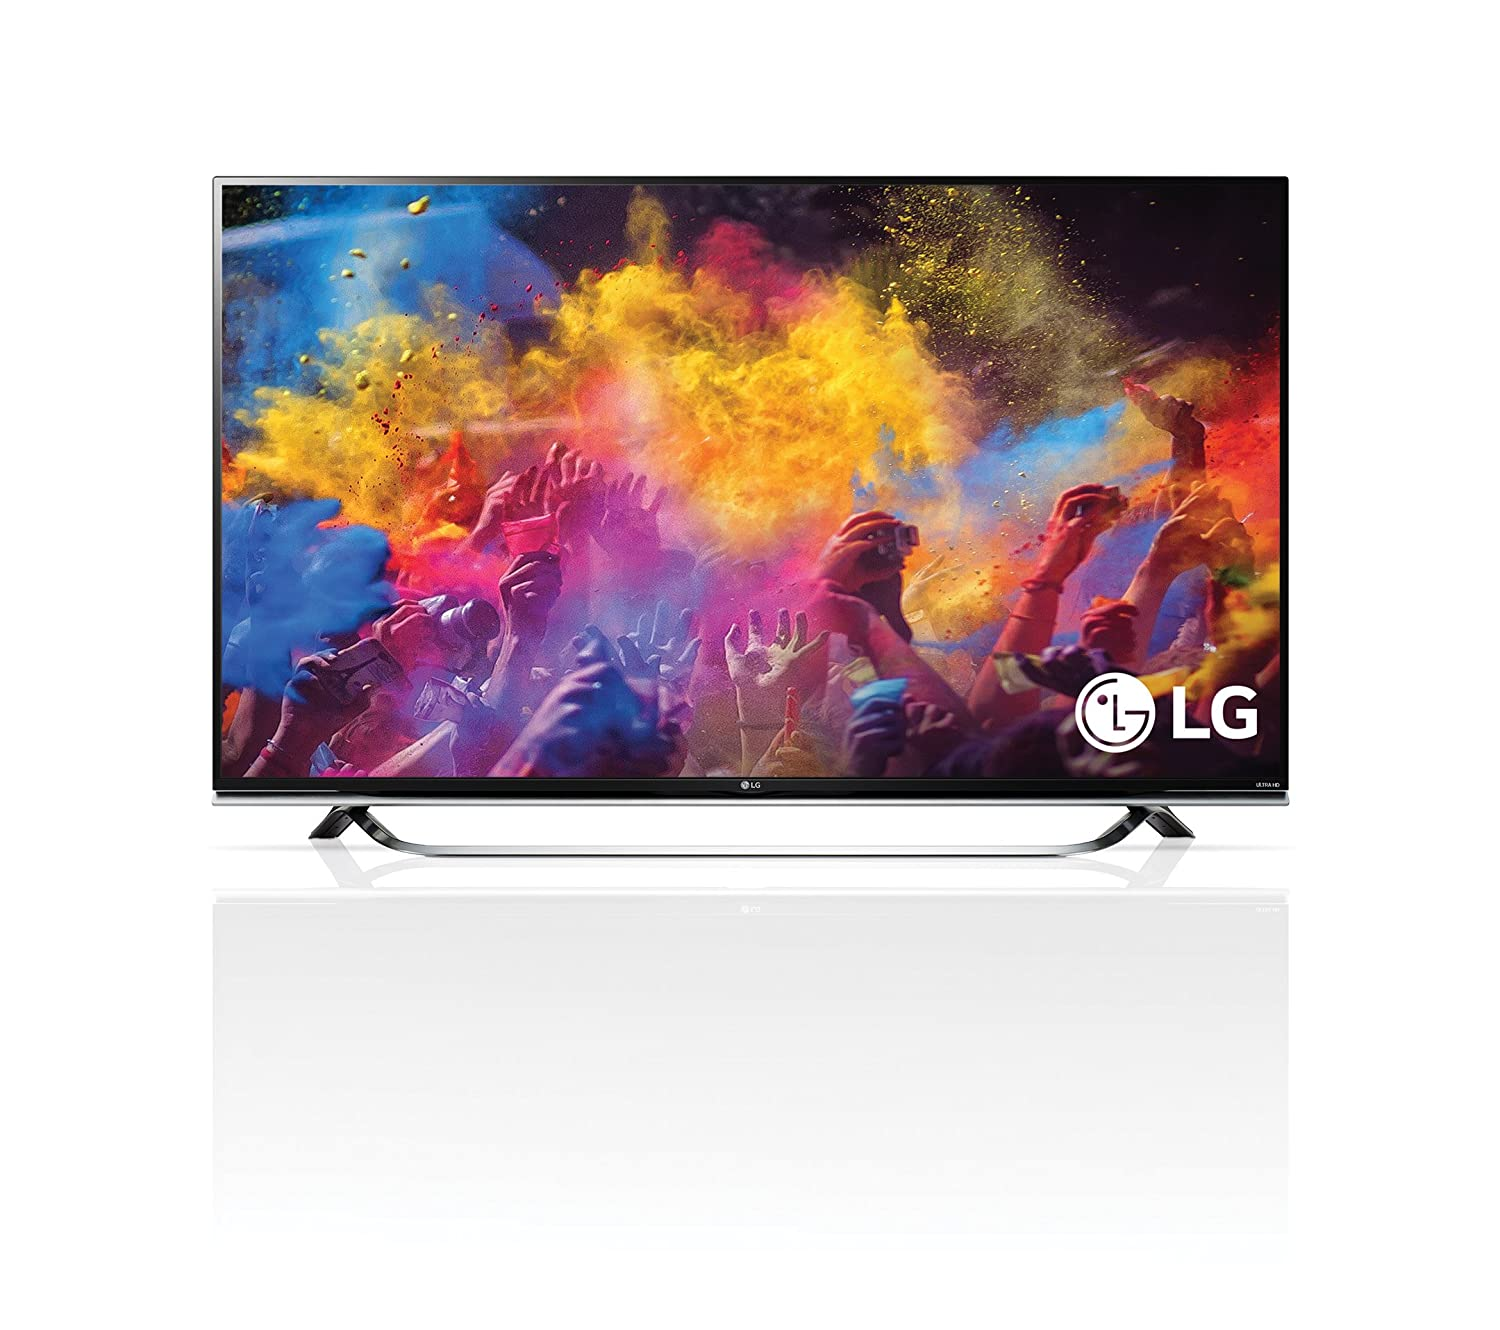 10 killer 4k tv deals that are about to expire on amazon bgr. Black Bedroom Furniture Sets. Home Design Ideas